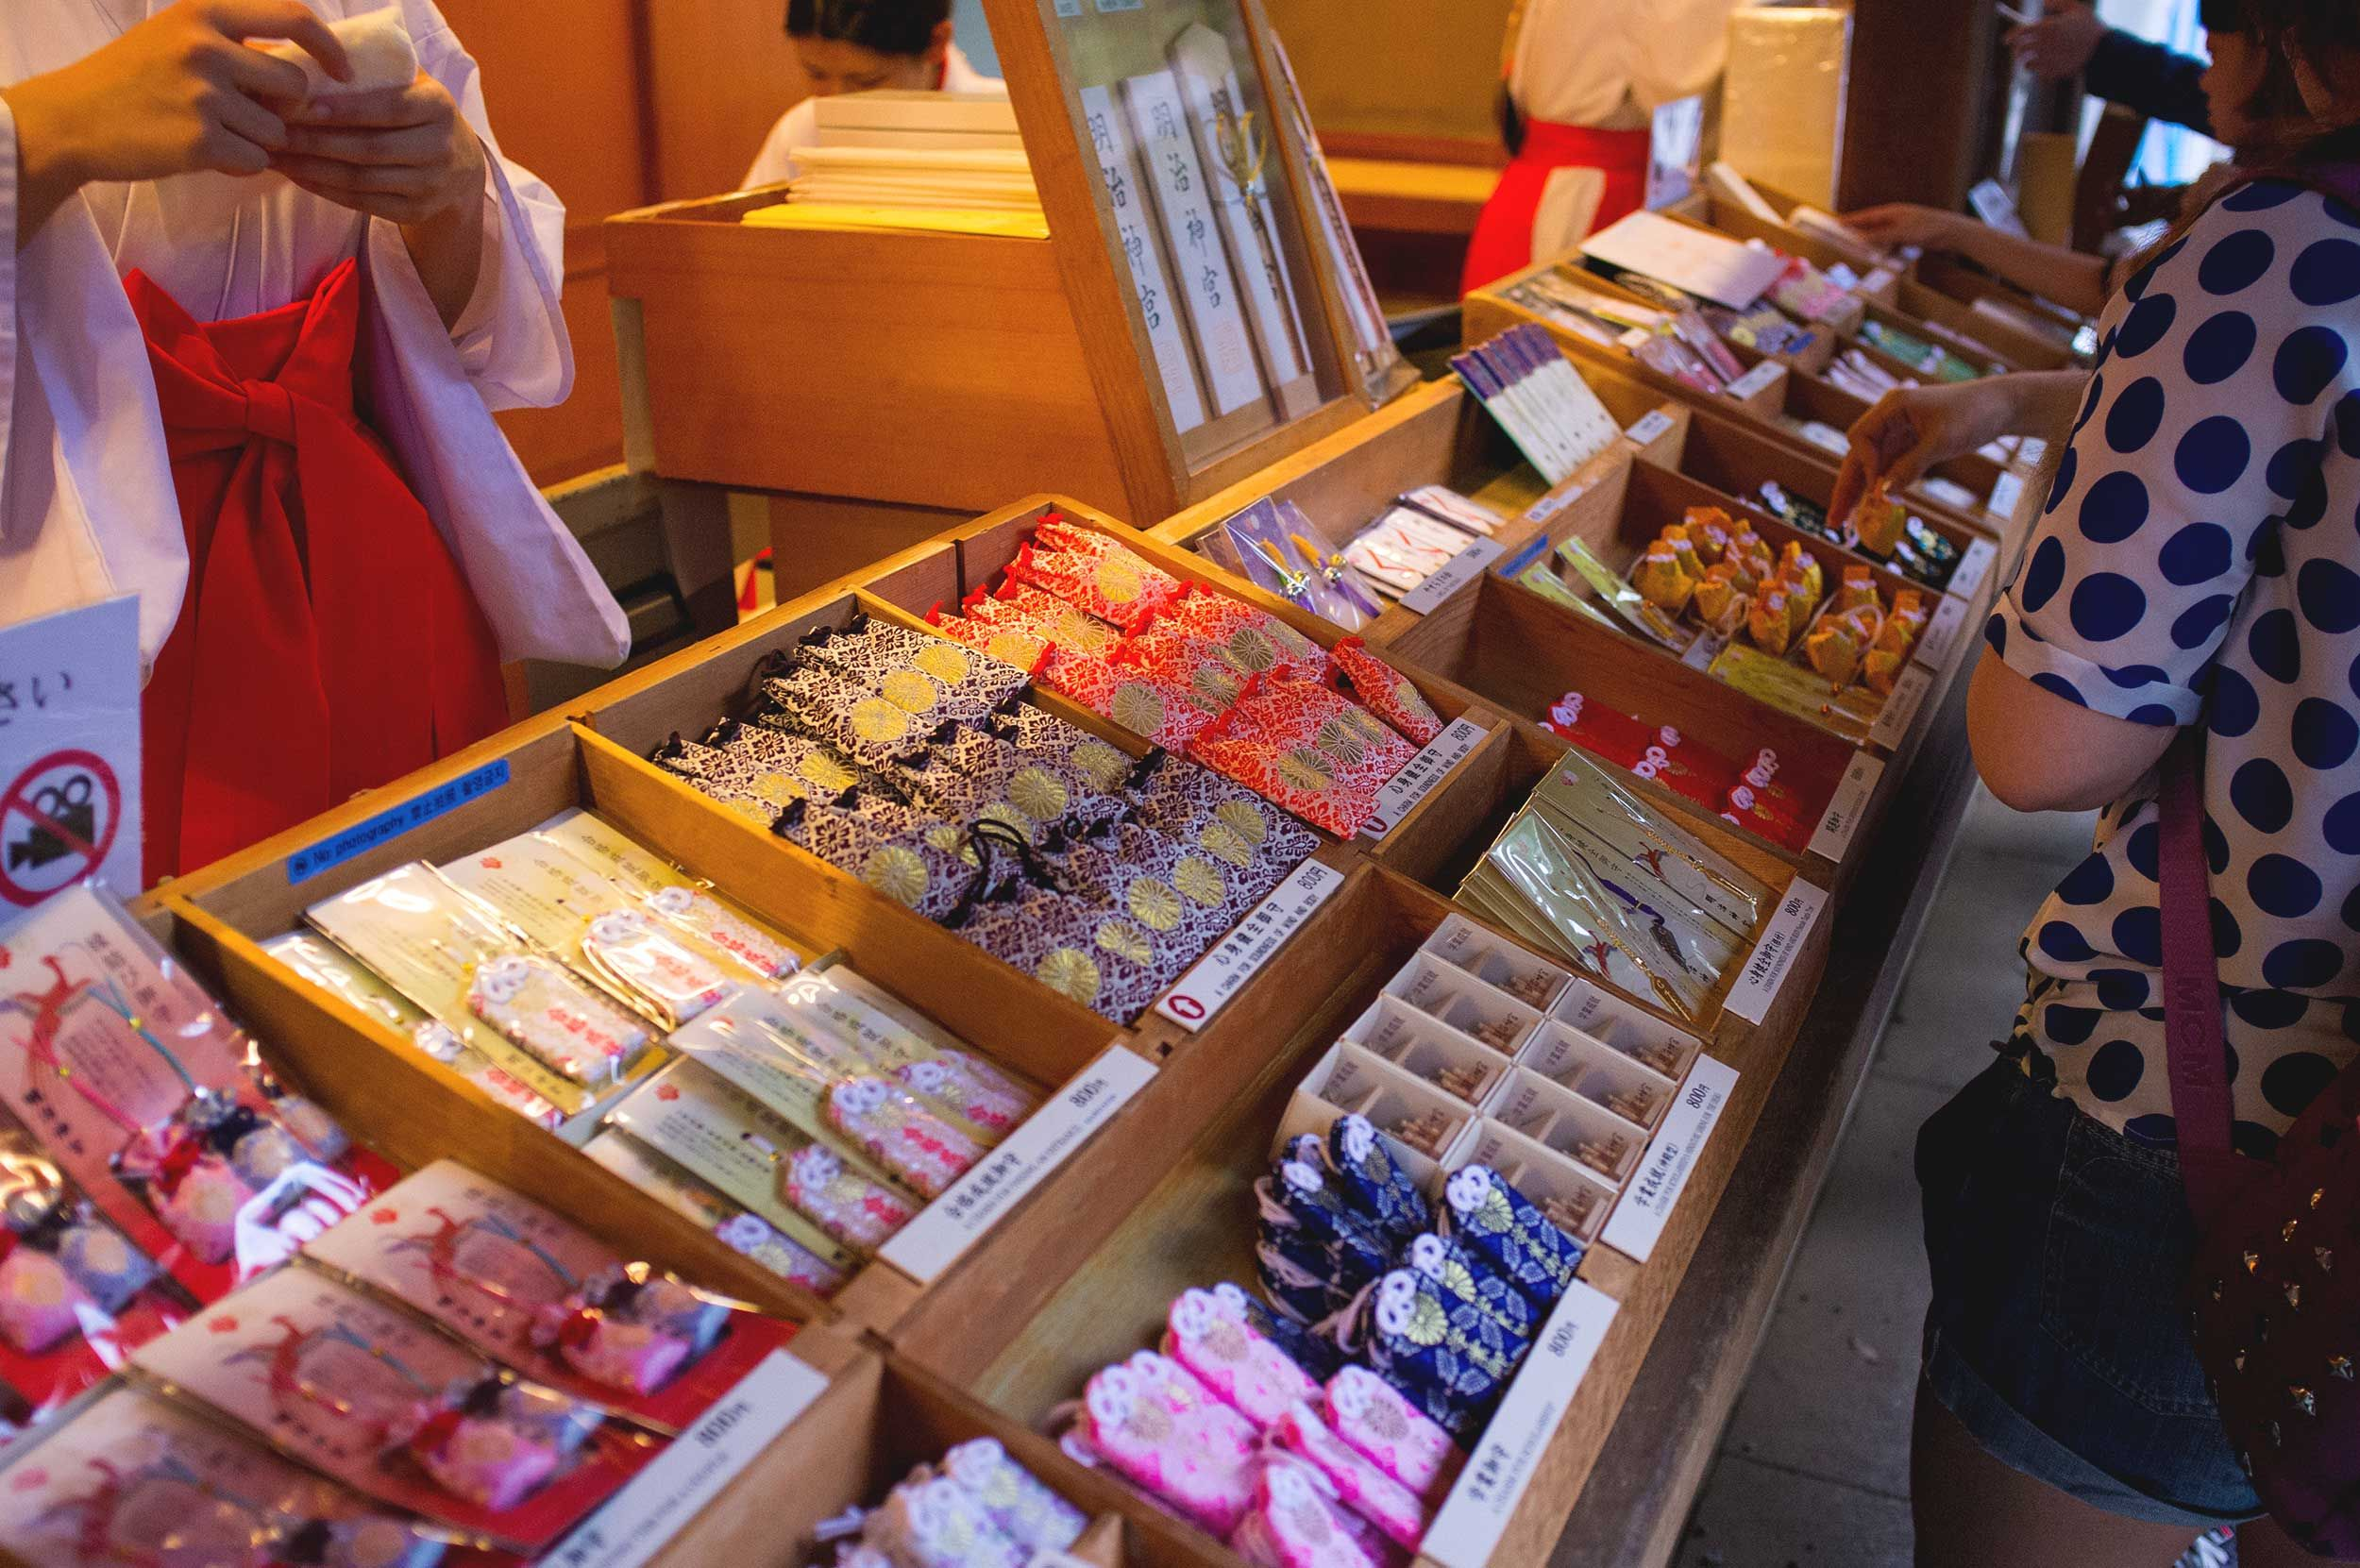 Photo taken as part of the blog 15 Days in Japan by Nuno Coelho SantosThis is a stall selling Omamori. These amulets are meant to be bought for oneself or for a relative, and you must write a wish or a prayer on a piece of paper and place it inside the Omamori. After a year you must replace your Omamori to ward off bad luck.